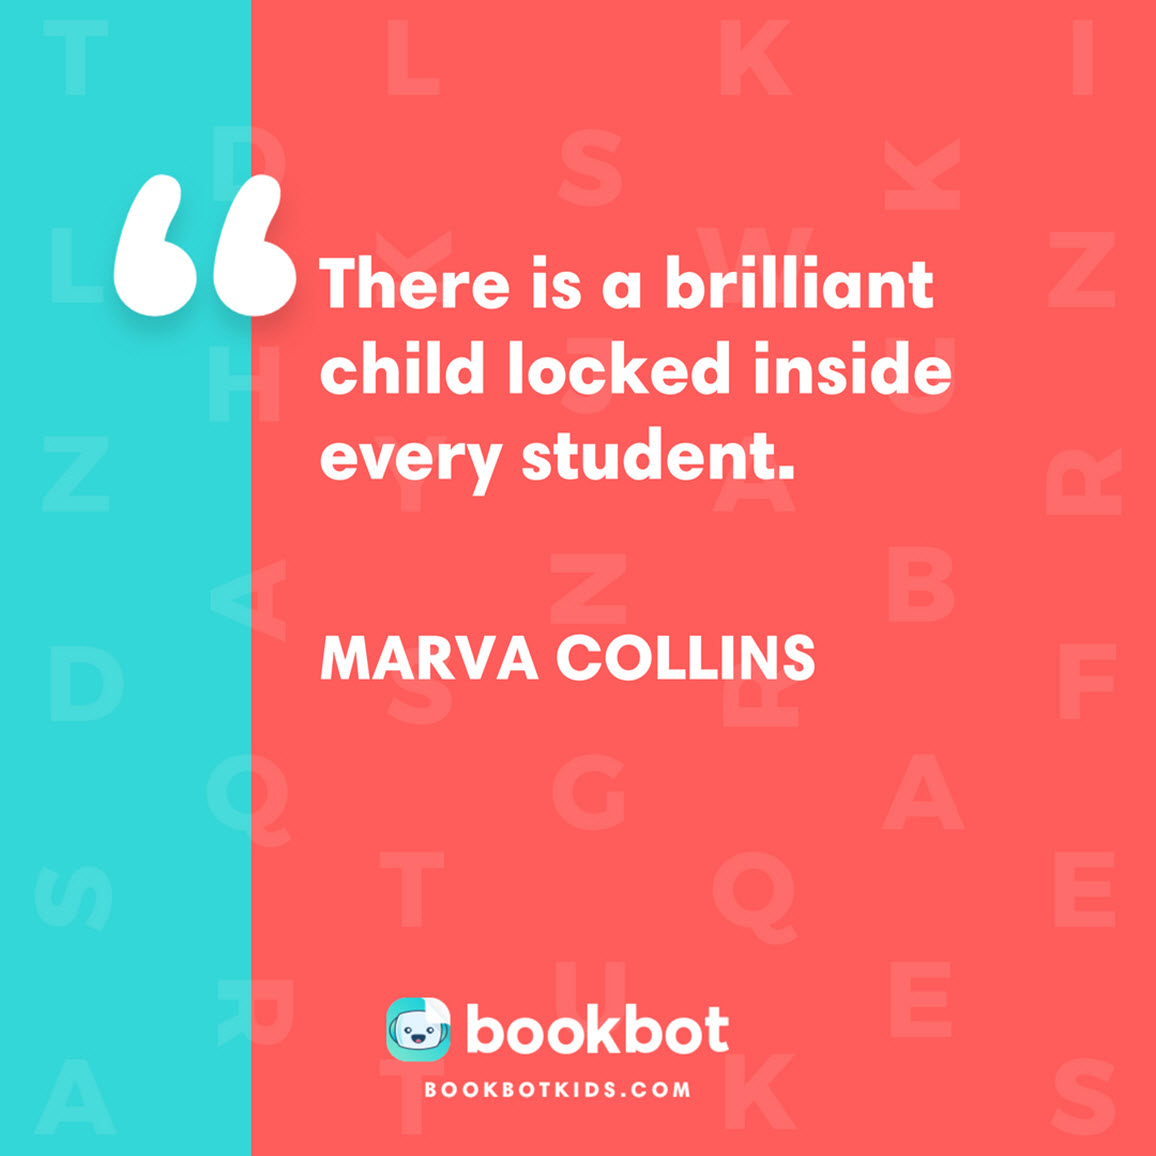 There is a brilliant child locked inside every student. – Marva Collins